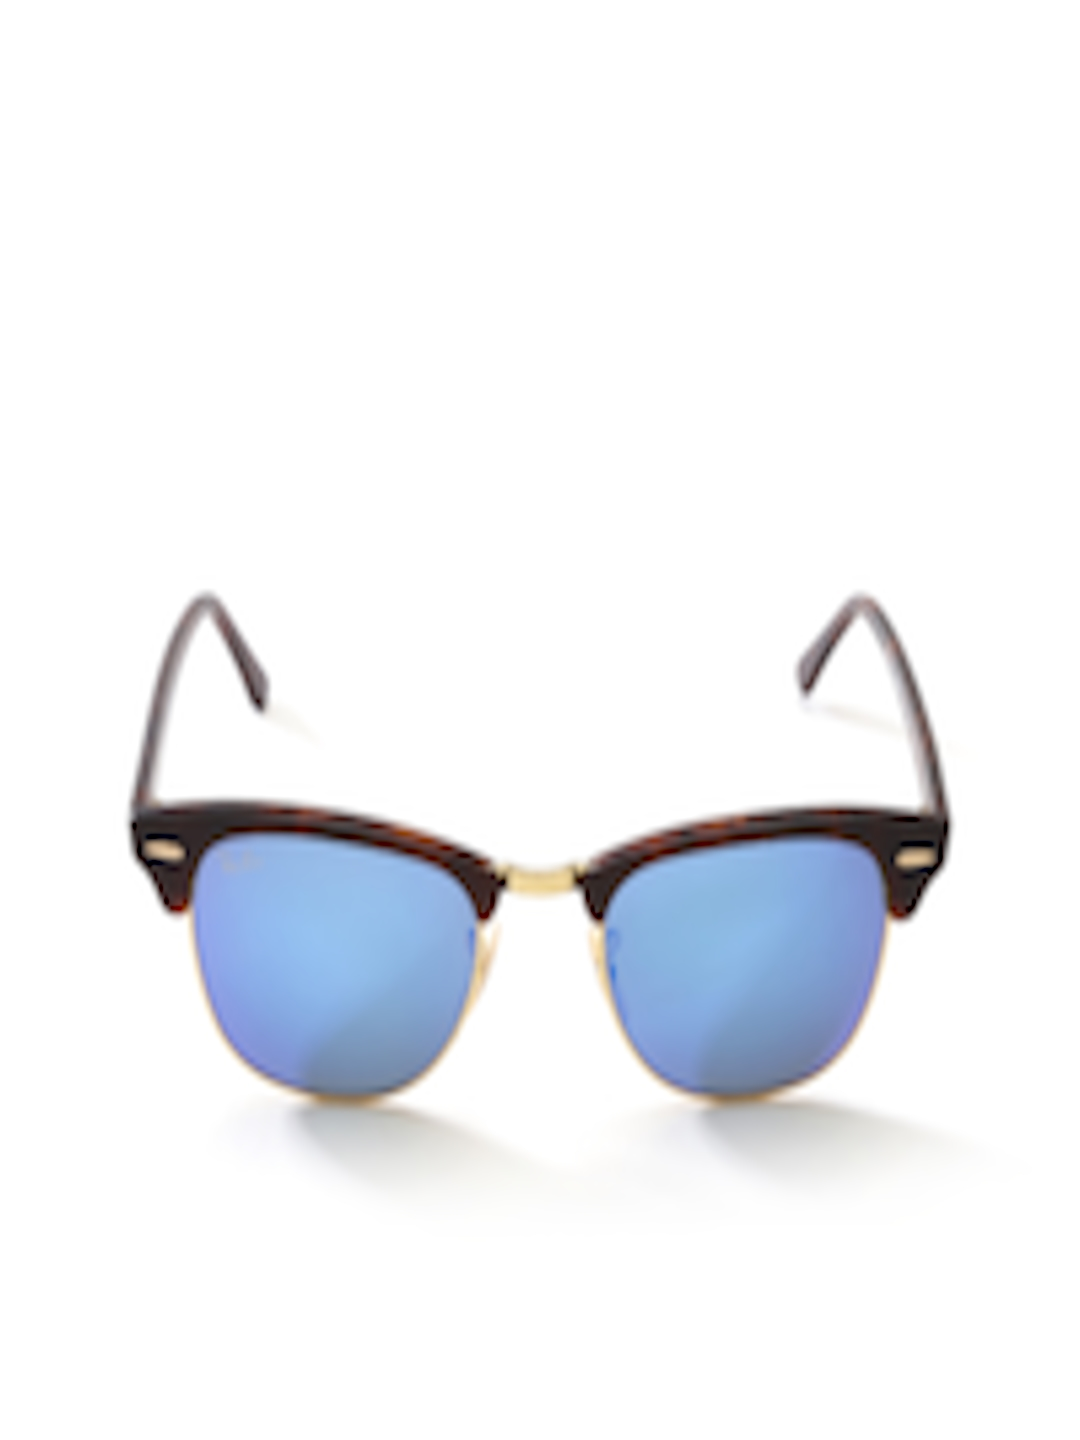 4fc8f968635 Buy Ray Ban Men Mirrored Clubmaster Sunglasses 0RB3016 114517 - Sunglasses  for Men 255577